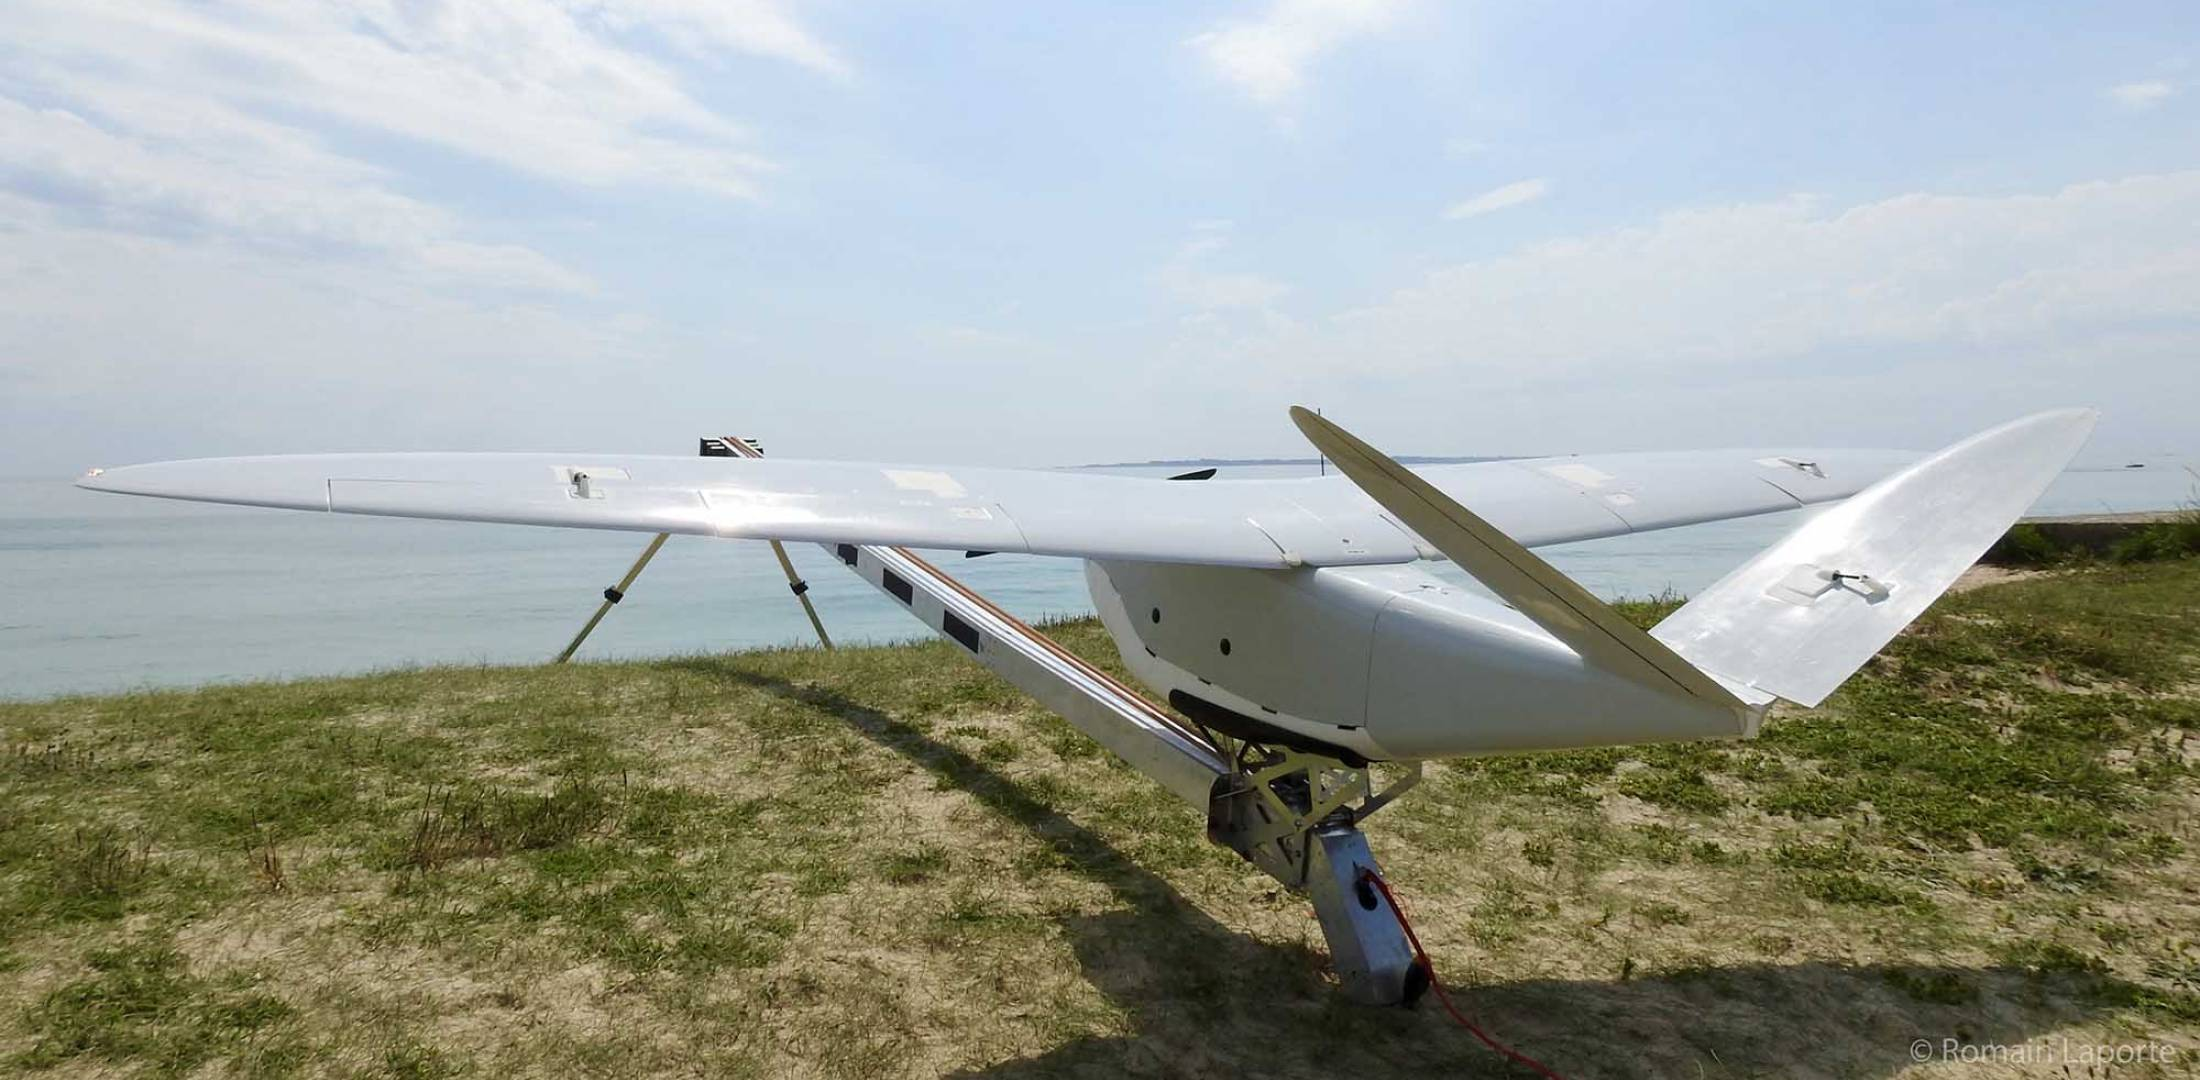 A DT26M Fixed Wing Drone Manufactured By Delair Tech Of Toulouse France Awaits Launch From Catapult Photo